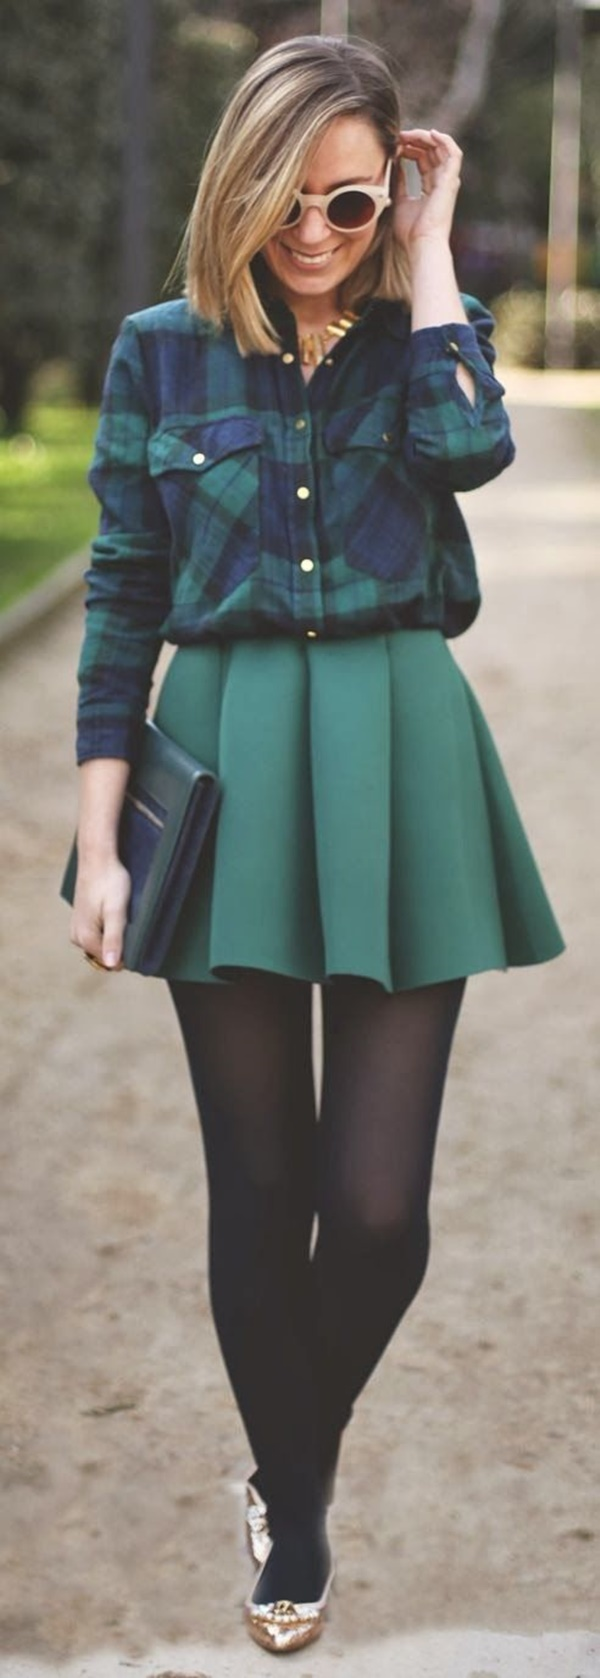 Styles of Skirt Every Woman Should Own (5)